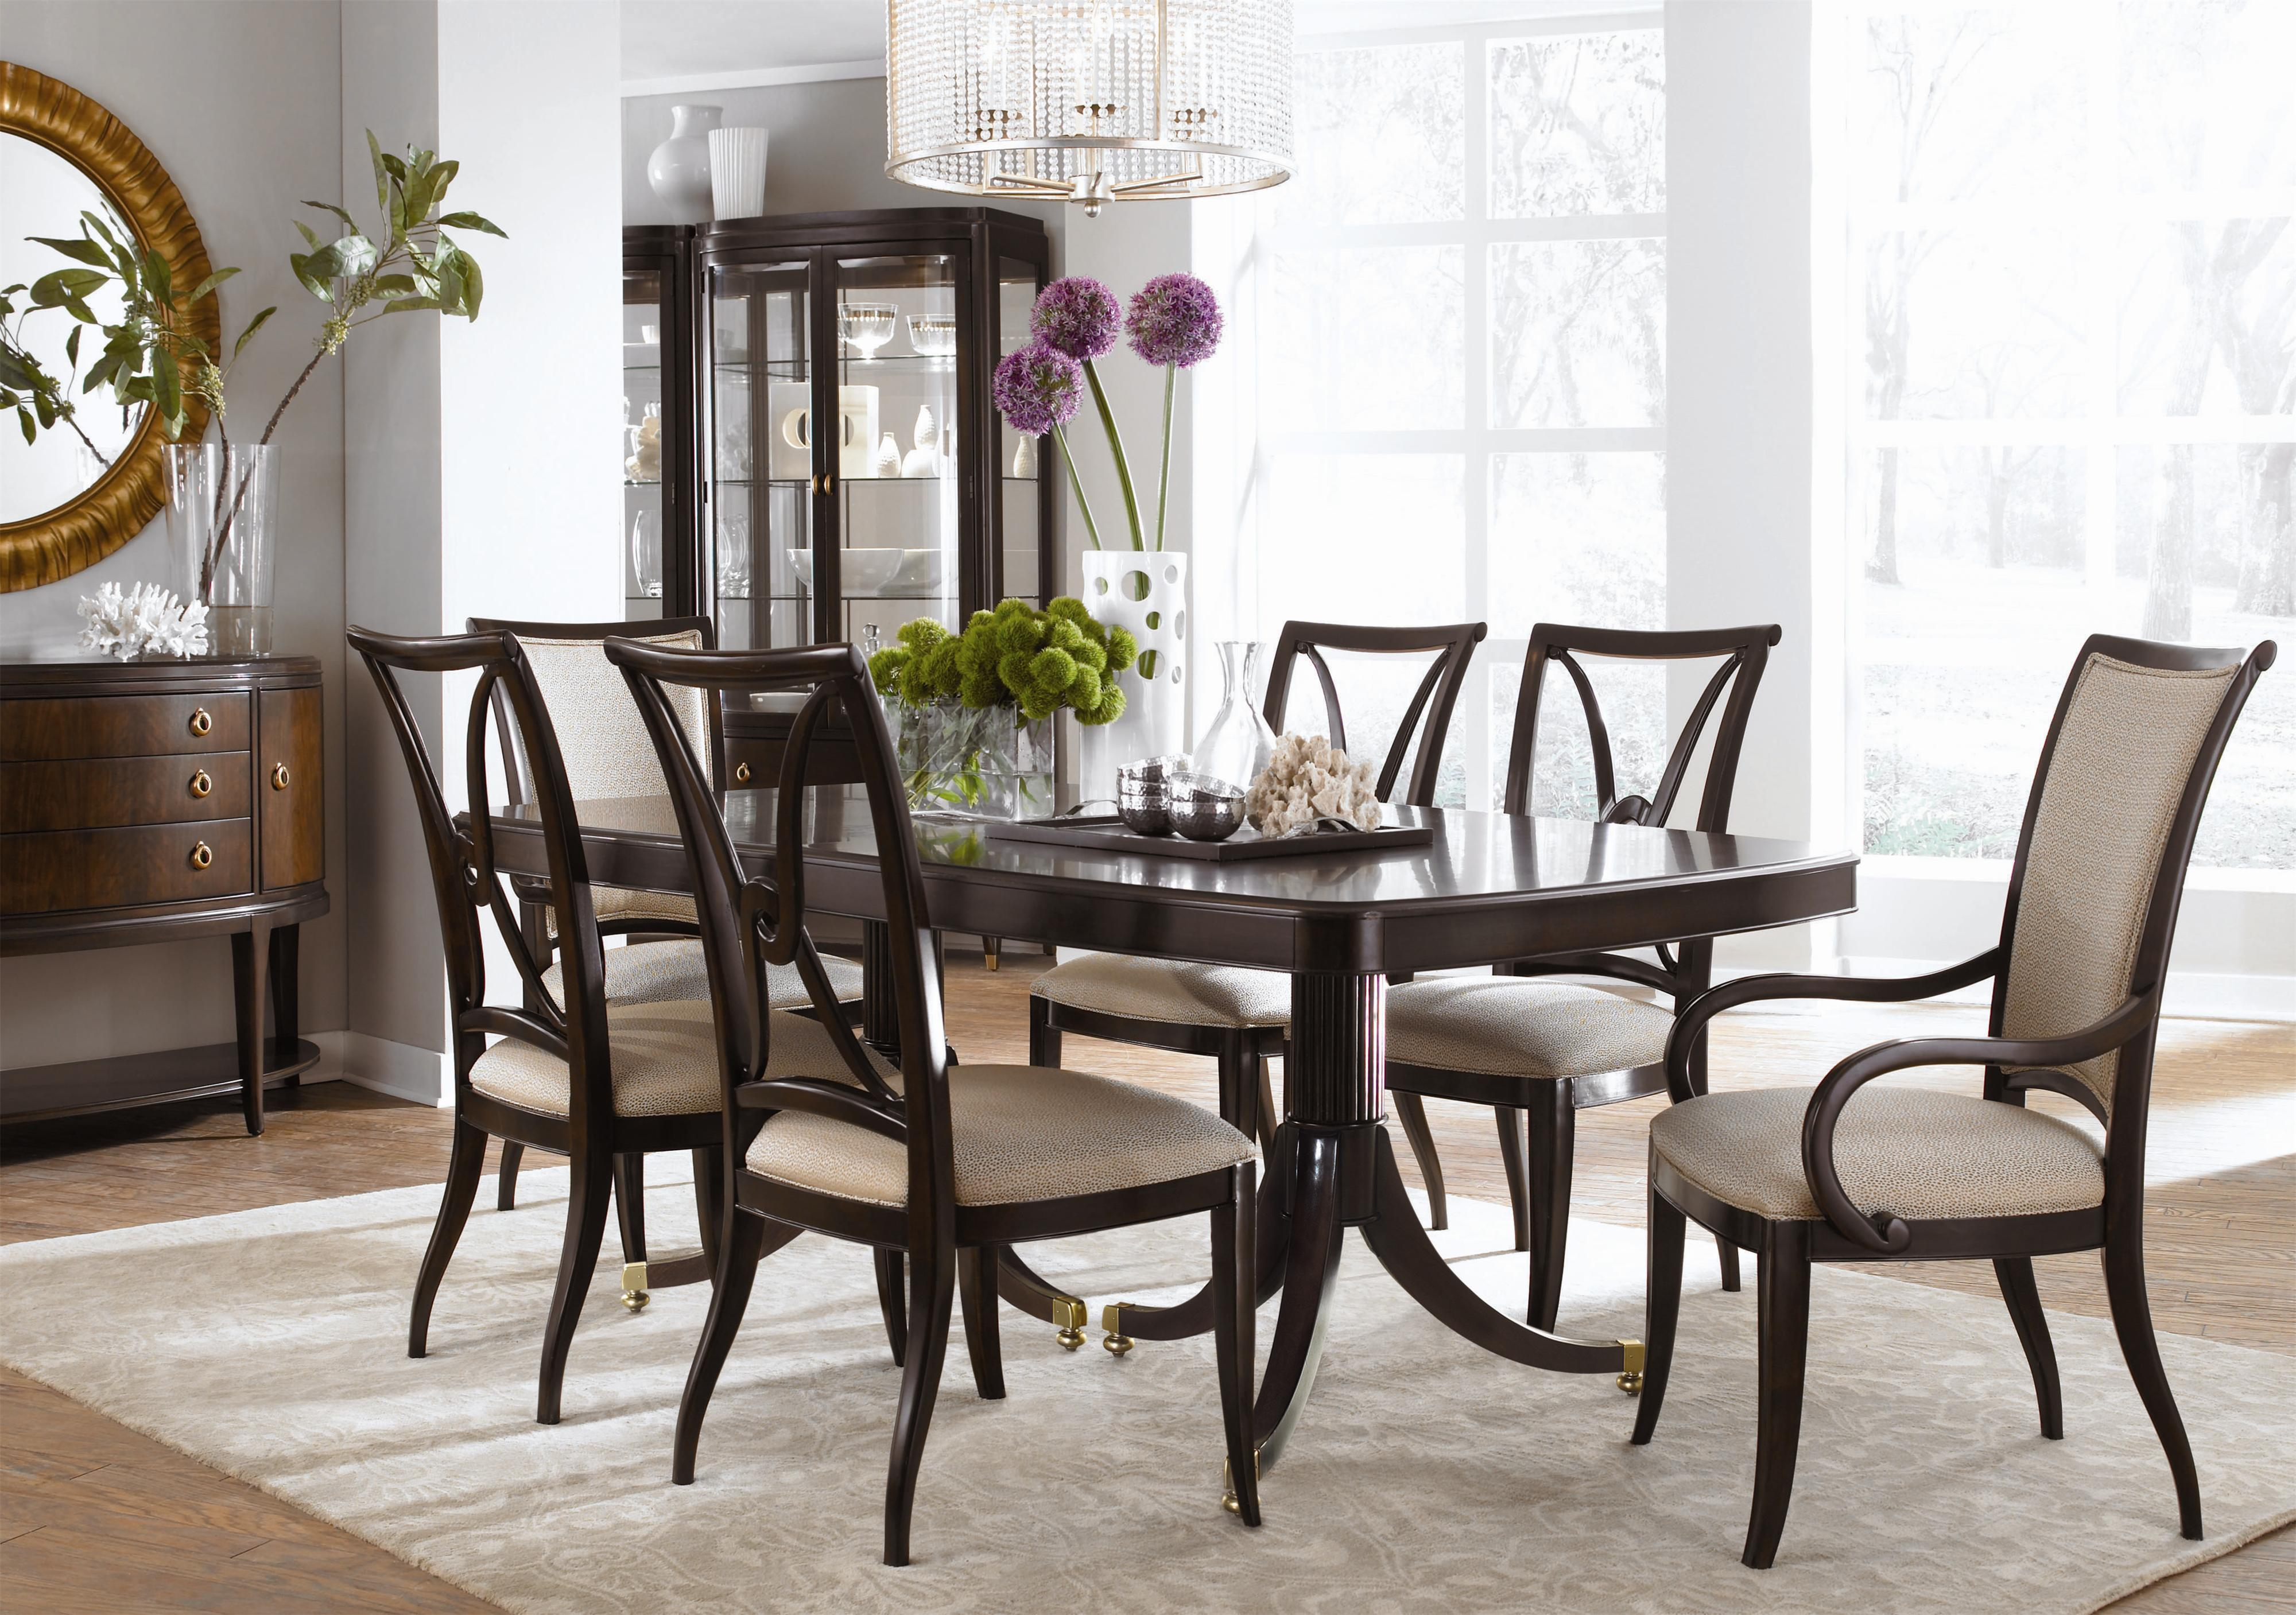 ThomasvilleR Studio 455 Seven Piece Dining Set